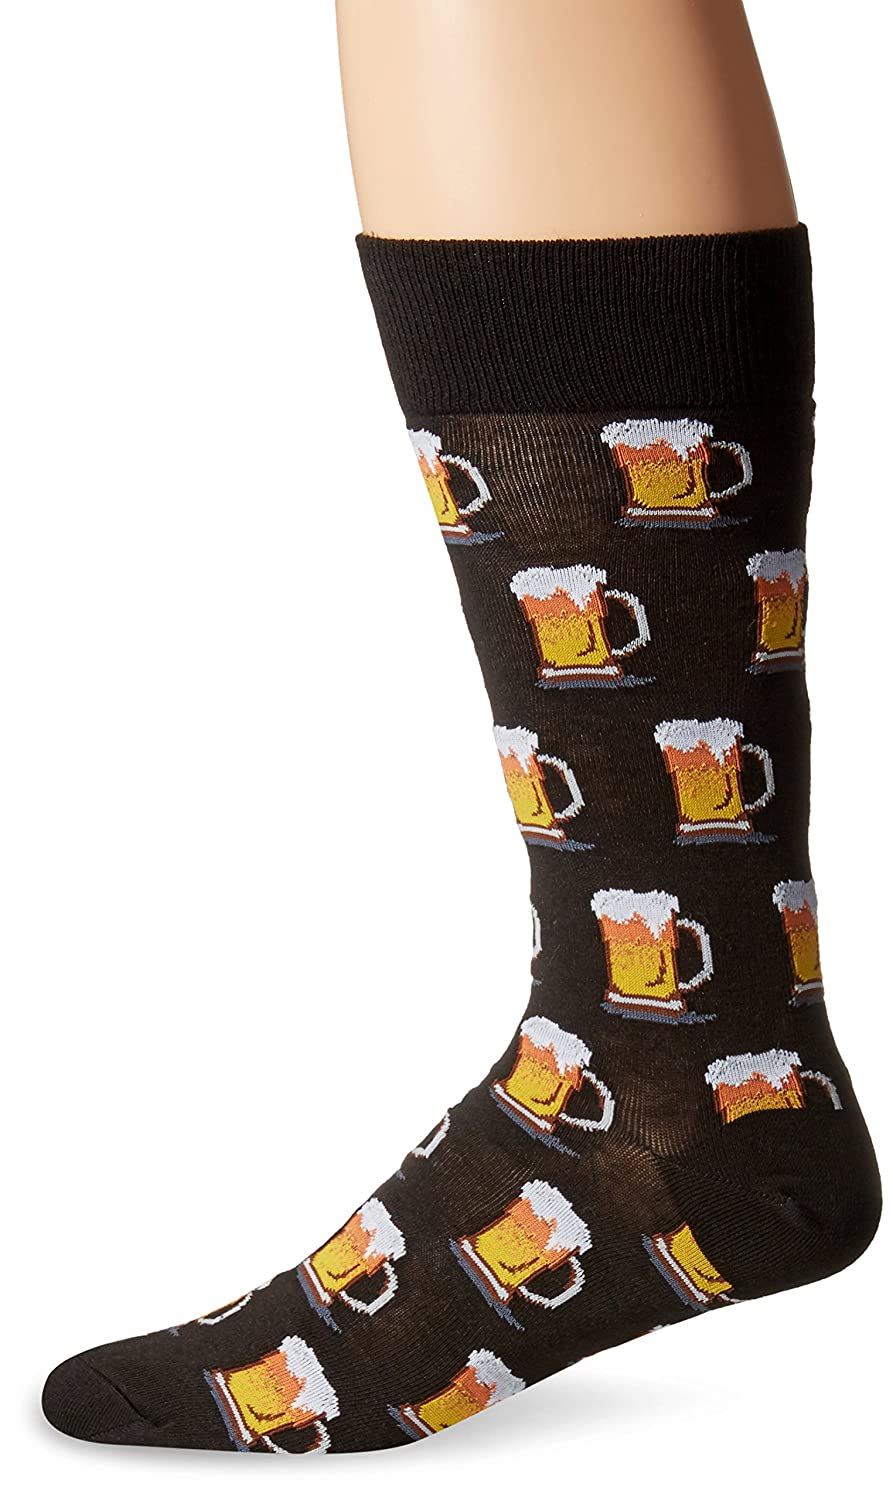 Hot Sox Men's Beer Crew Hot Sox Men' s Beer Crew Black 10-13 Hot Sox Mens Socks